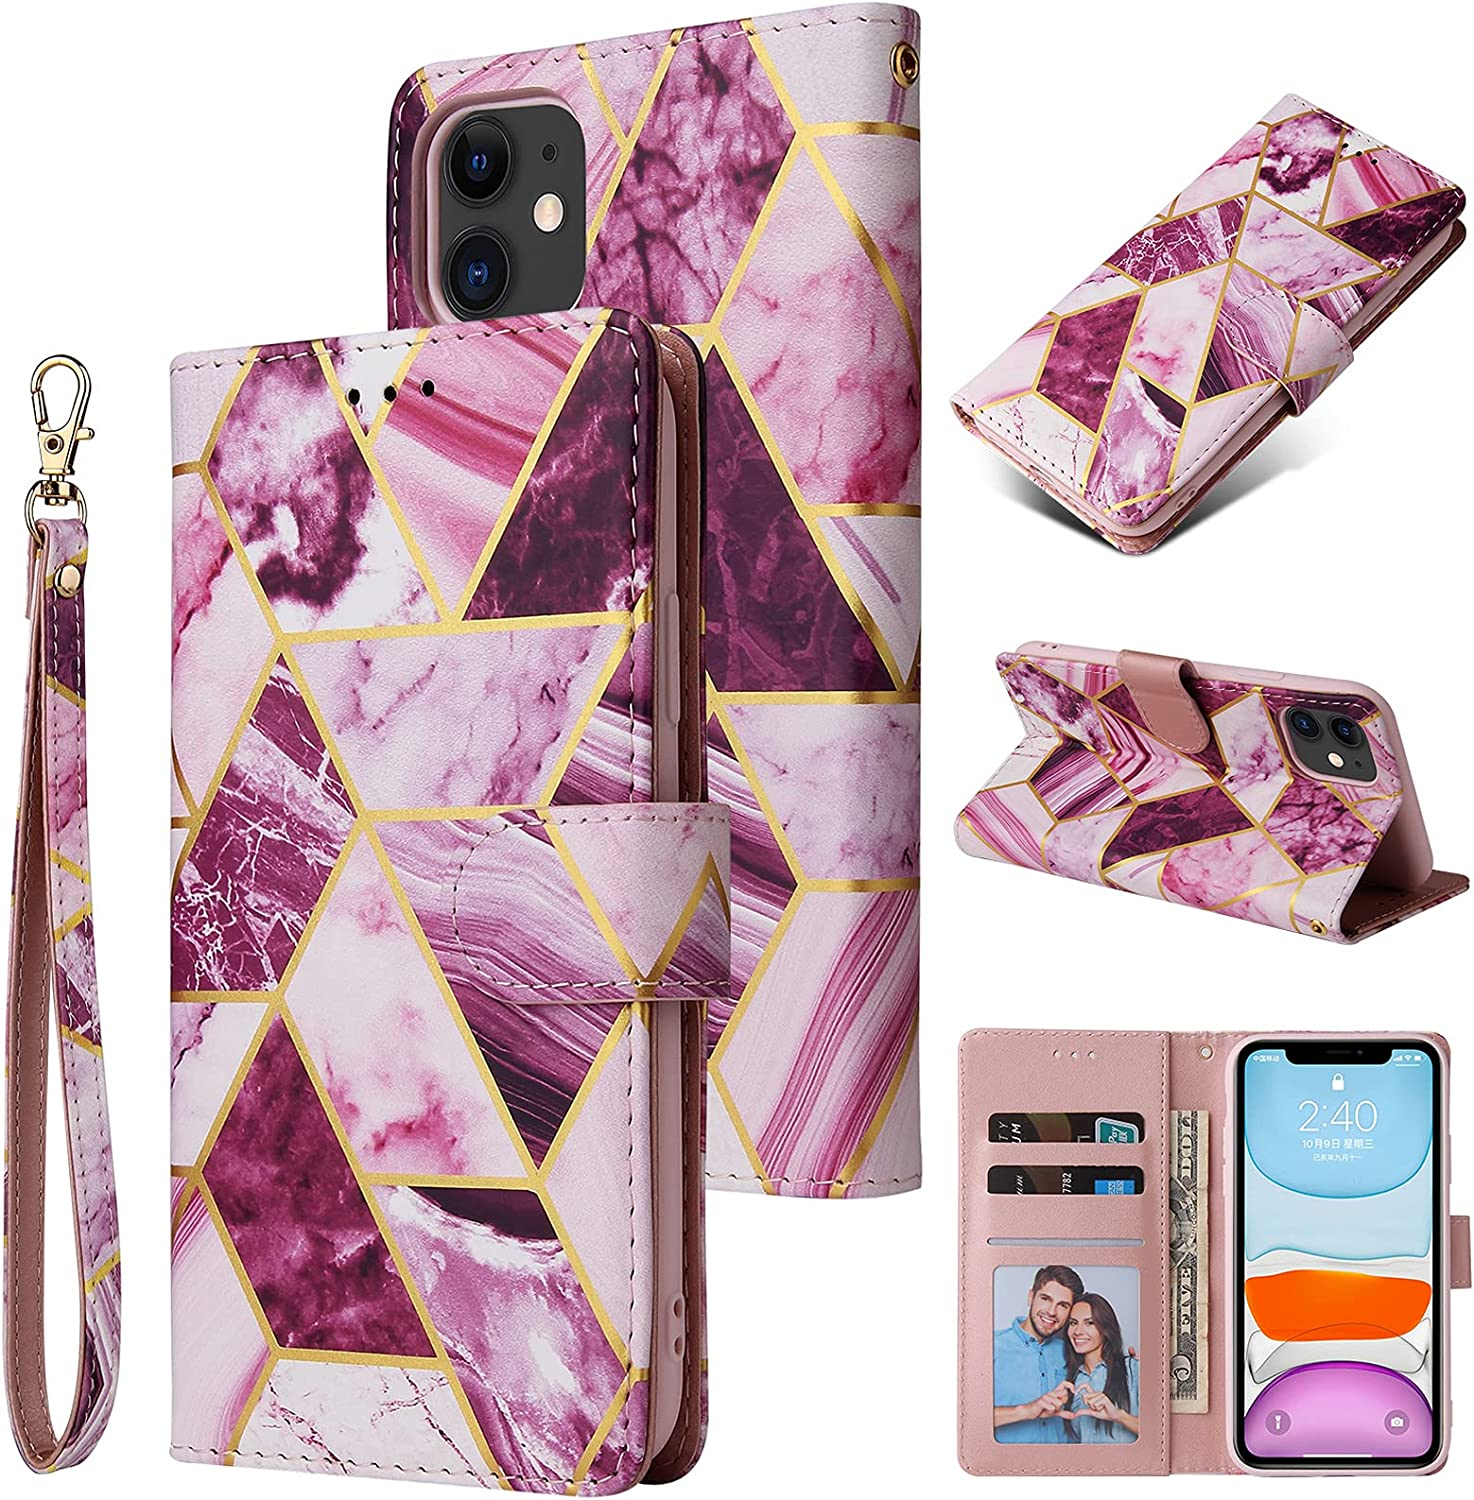 Daole Geometric Marble Wallet Case for iPhone 7 Women Purple, PU Leather Magnetic Flip Case for iPhone 7 & iPhone 8 Printed Pattern with [Wrist Strap] [Card Holder] [Kickstand]